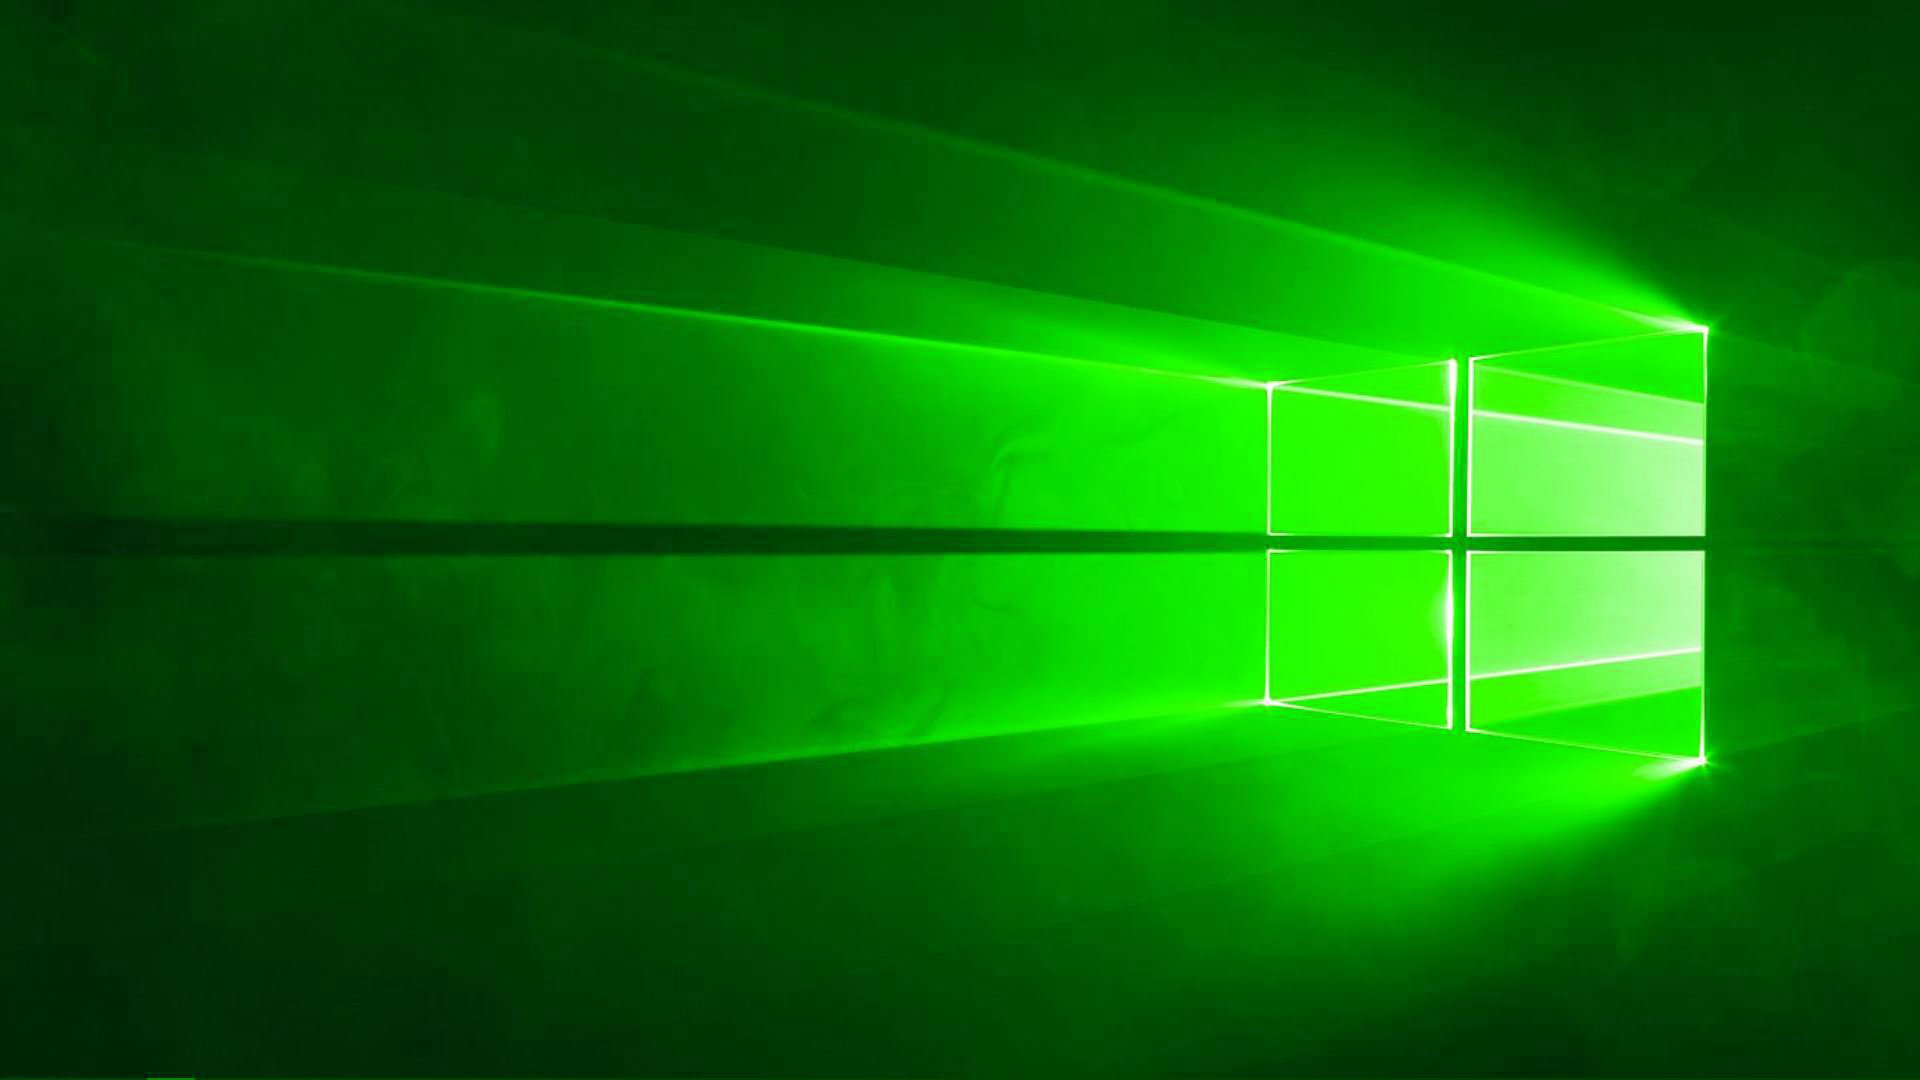 Windows 10 Green Wallpaper 1920x1080 Green Wallpaper Green Windows Windows Wallpaper